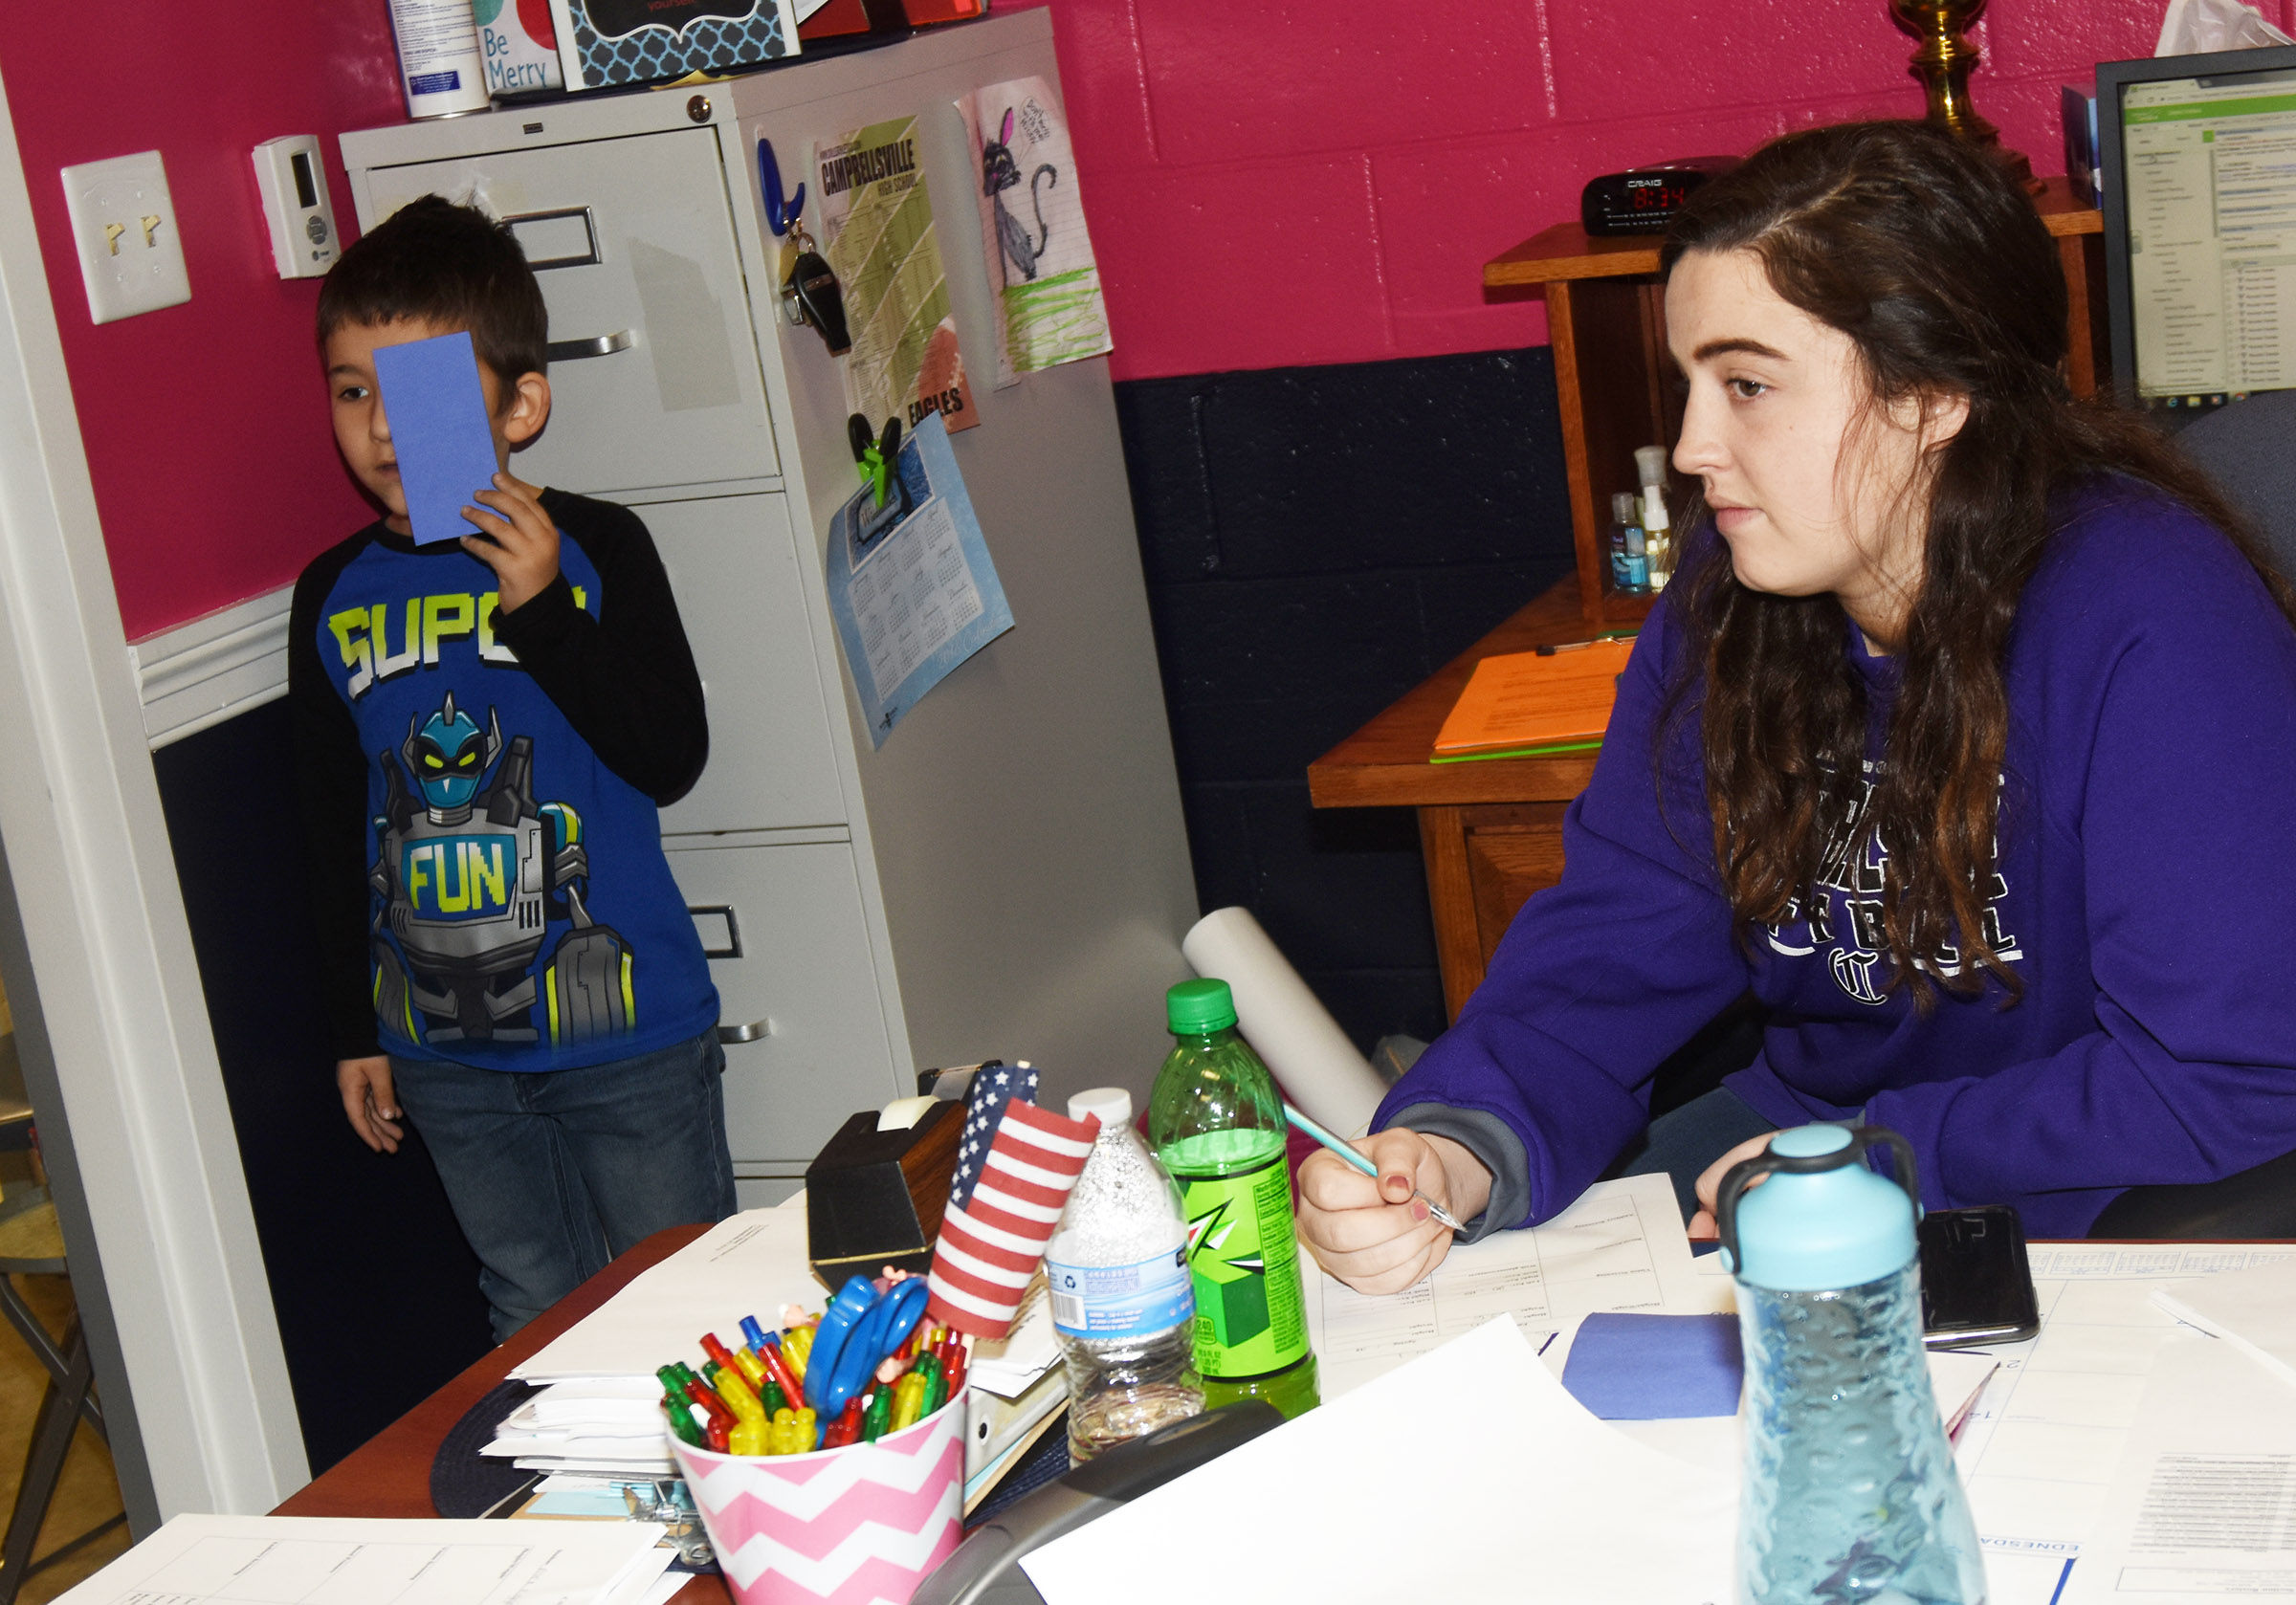 CES first-grader Josiah Edwards undergoes an eye exam, as CHS senior Caitlin Bright records the results. Bright is an intern with CES Guidance Counselor Beth Wiedewitsch.